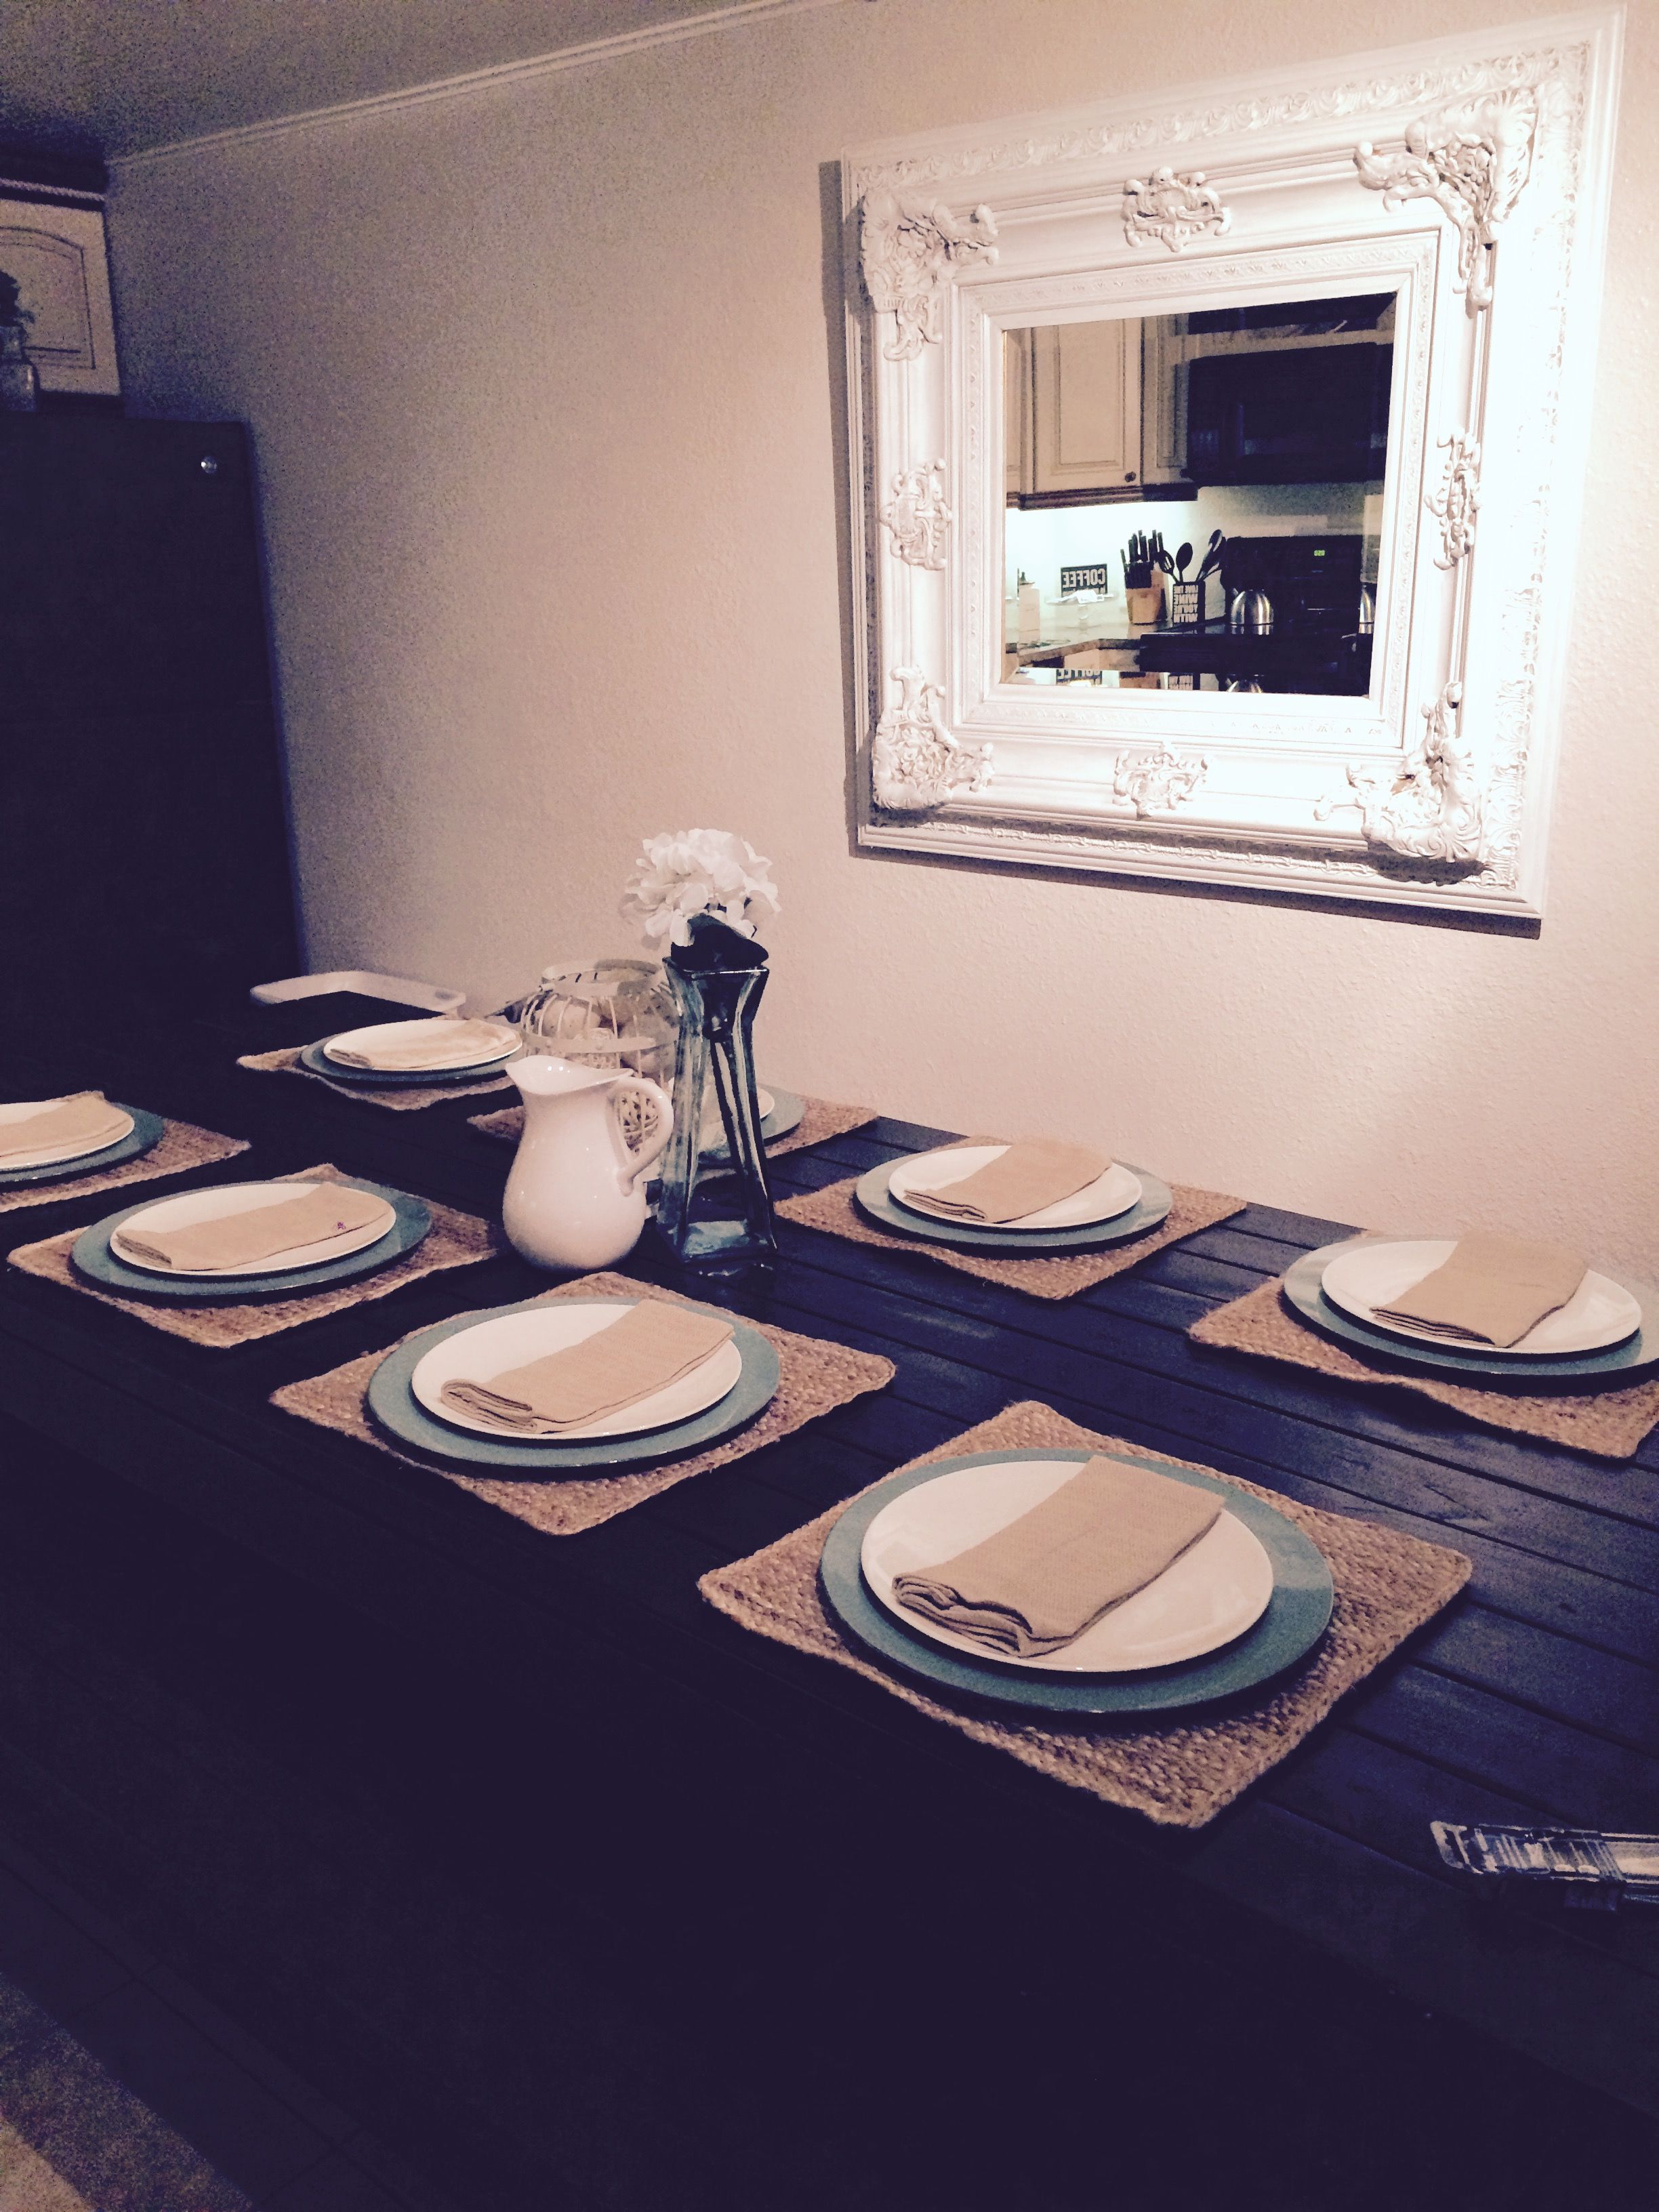 The dinner table is set and ready for you to enjoy! Find